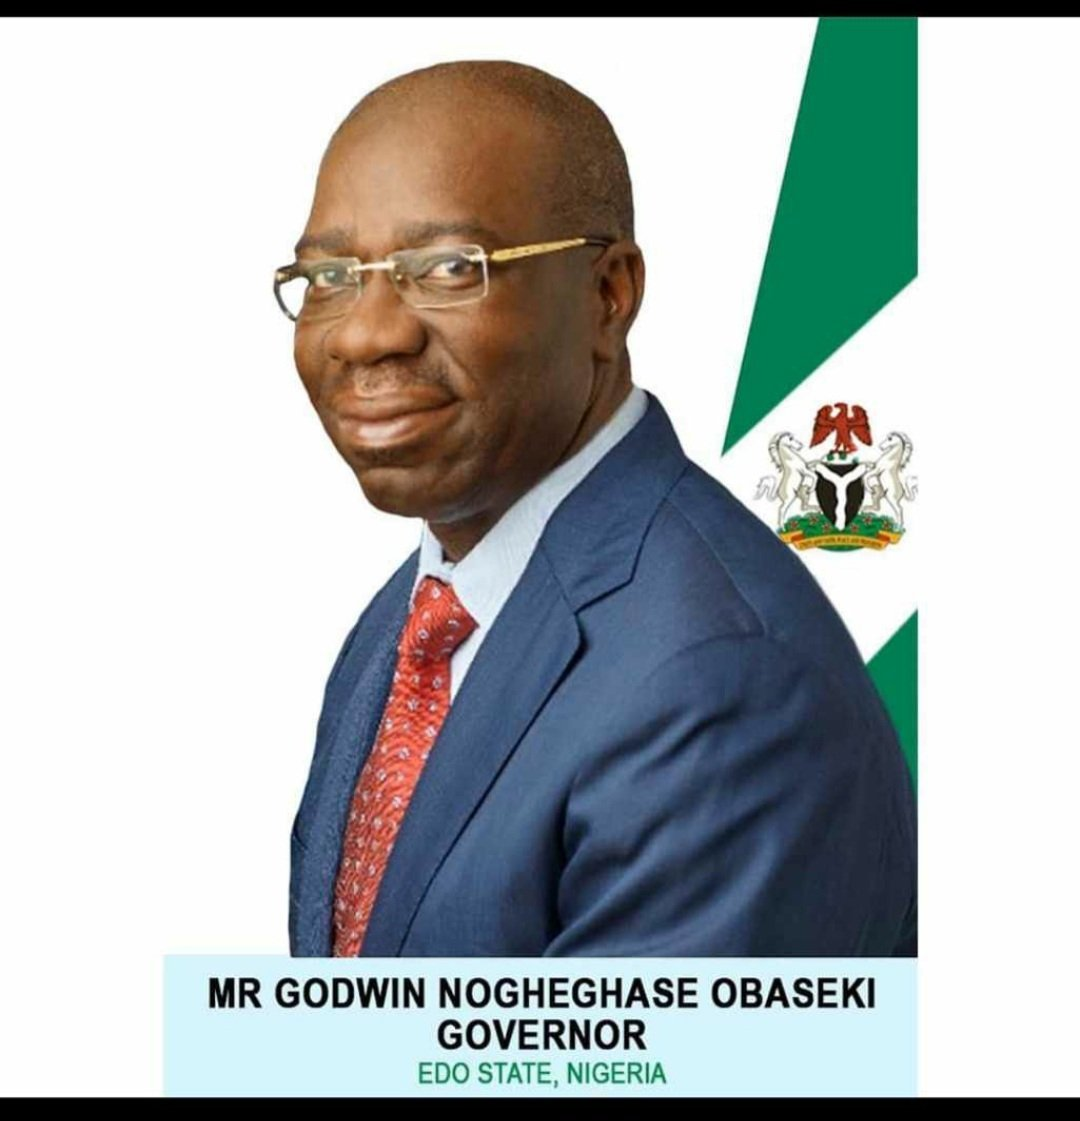 #ondisday #20September2020 @GovernorObaseki, the @OfficialPDPNig's Candidate was declared the winner of the 2020 Edo State Gubernatorial election by @inecnigeria. He defeated his closest opponent, the @OfficialAPCNg Candidate, @IzeIyamu4EdoGov. https://t.co/9AXGzD3DCf